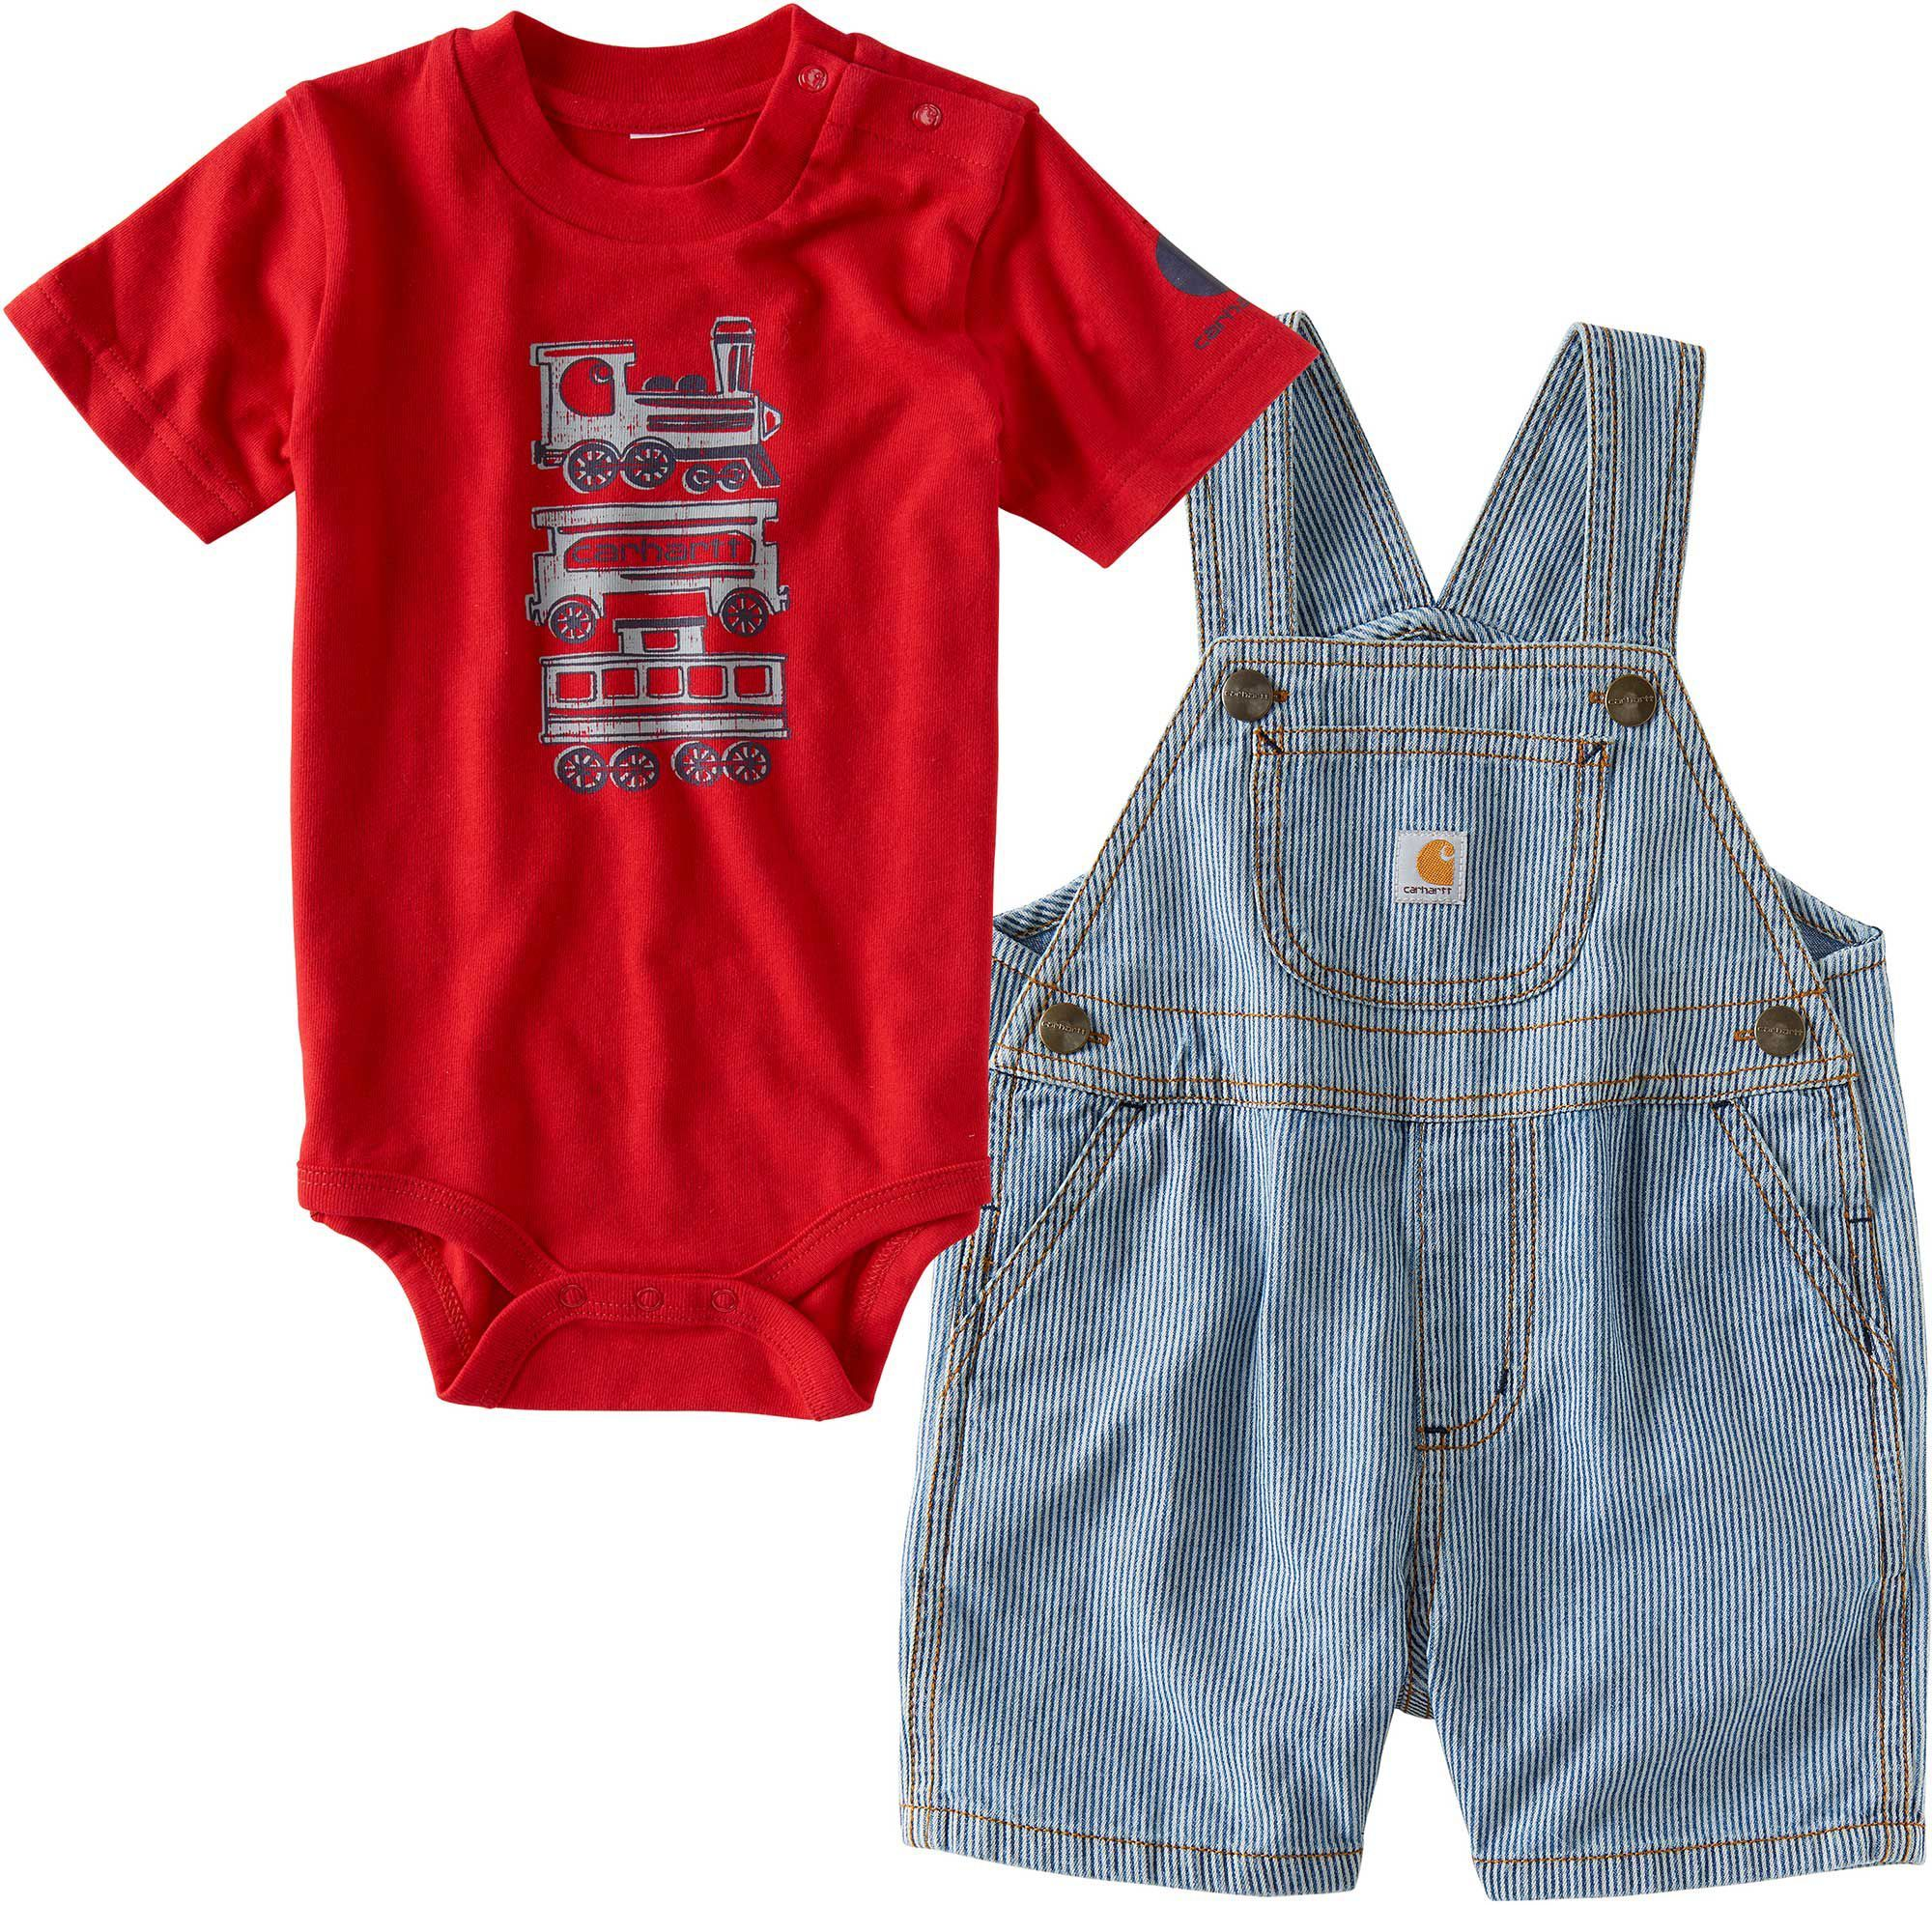 392dac5ece3d Carhartt Infant Boys  Making Tracks Overall Set in 2018